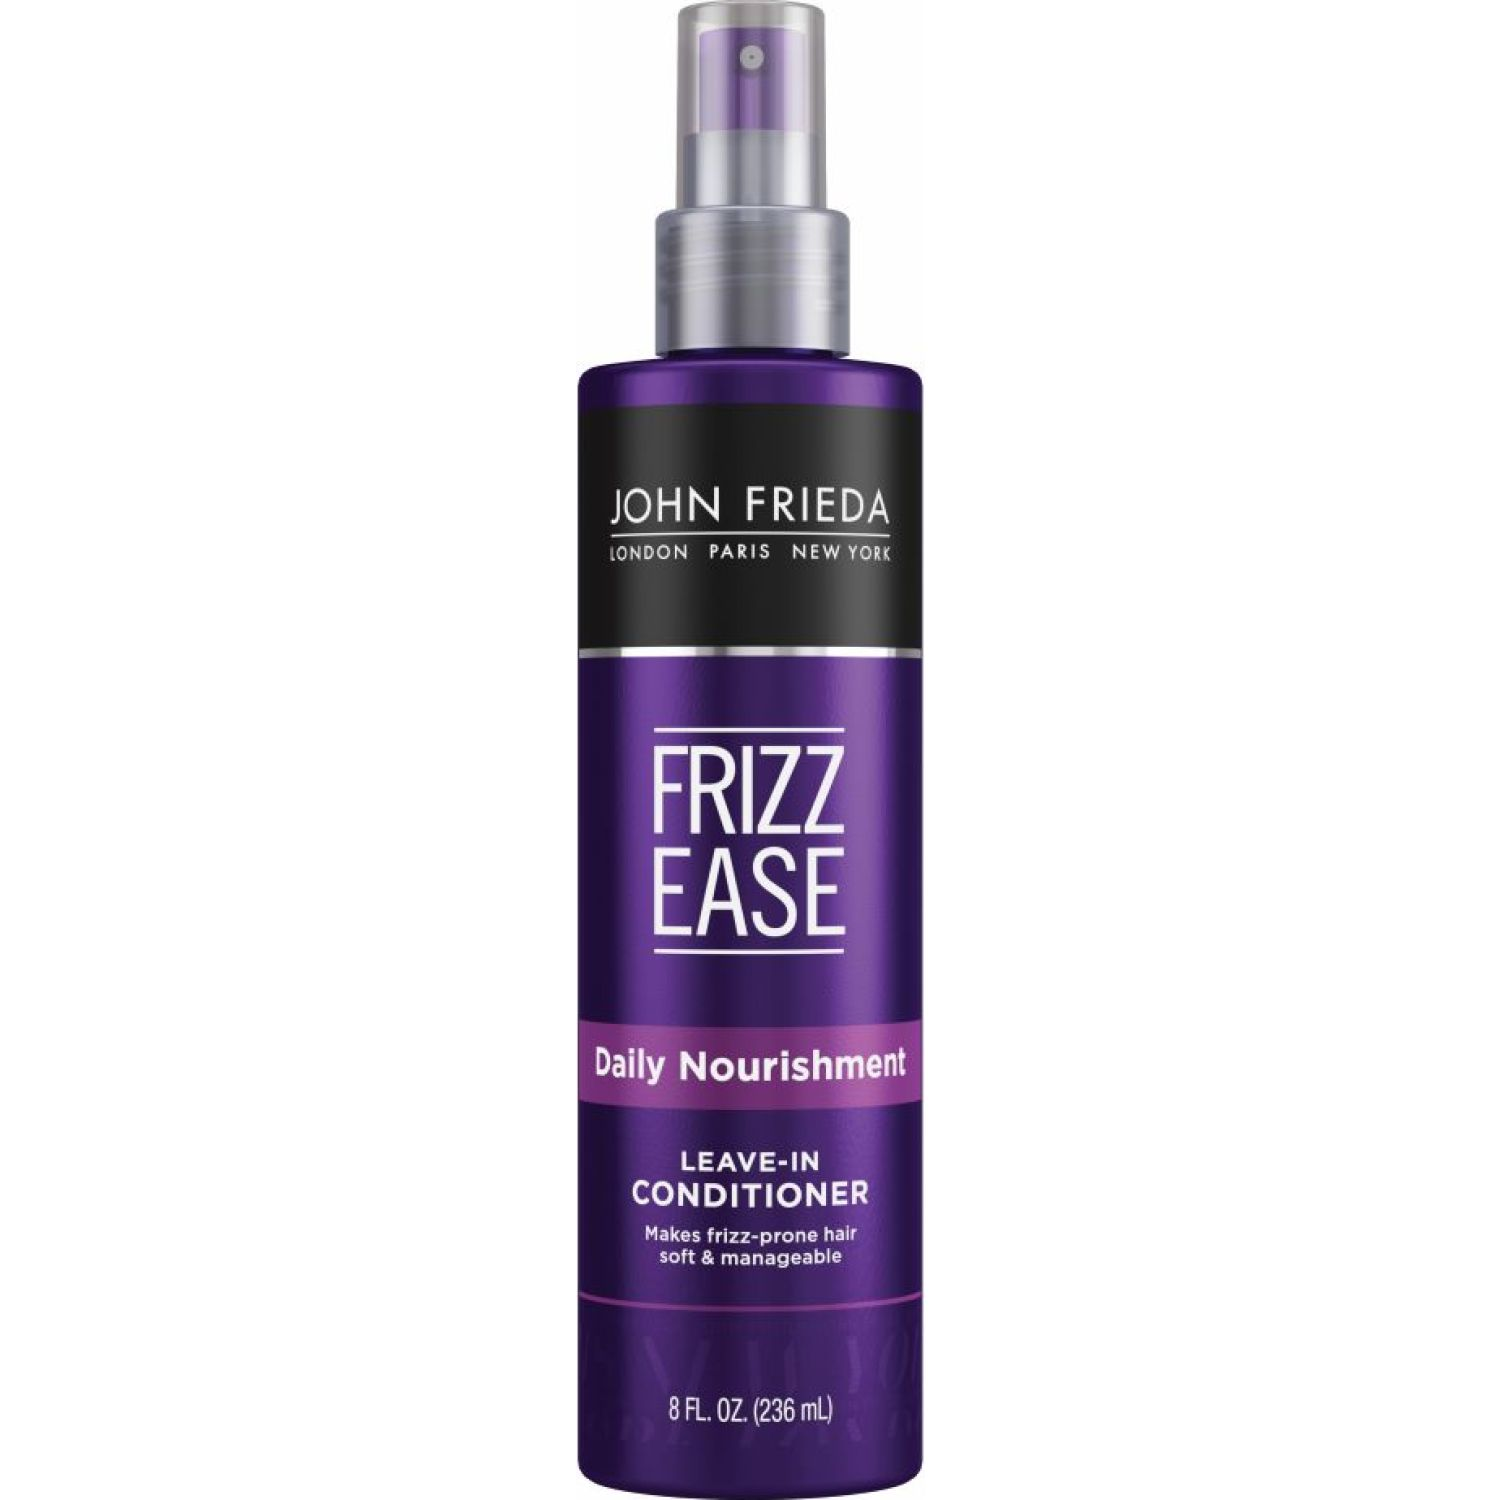 JOHN FRIEDA Frizz Ease Spray Diario No Enjuague Morado Acondicionador